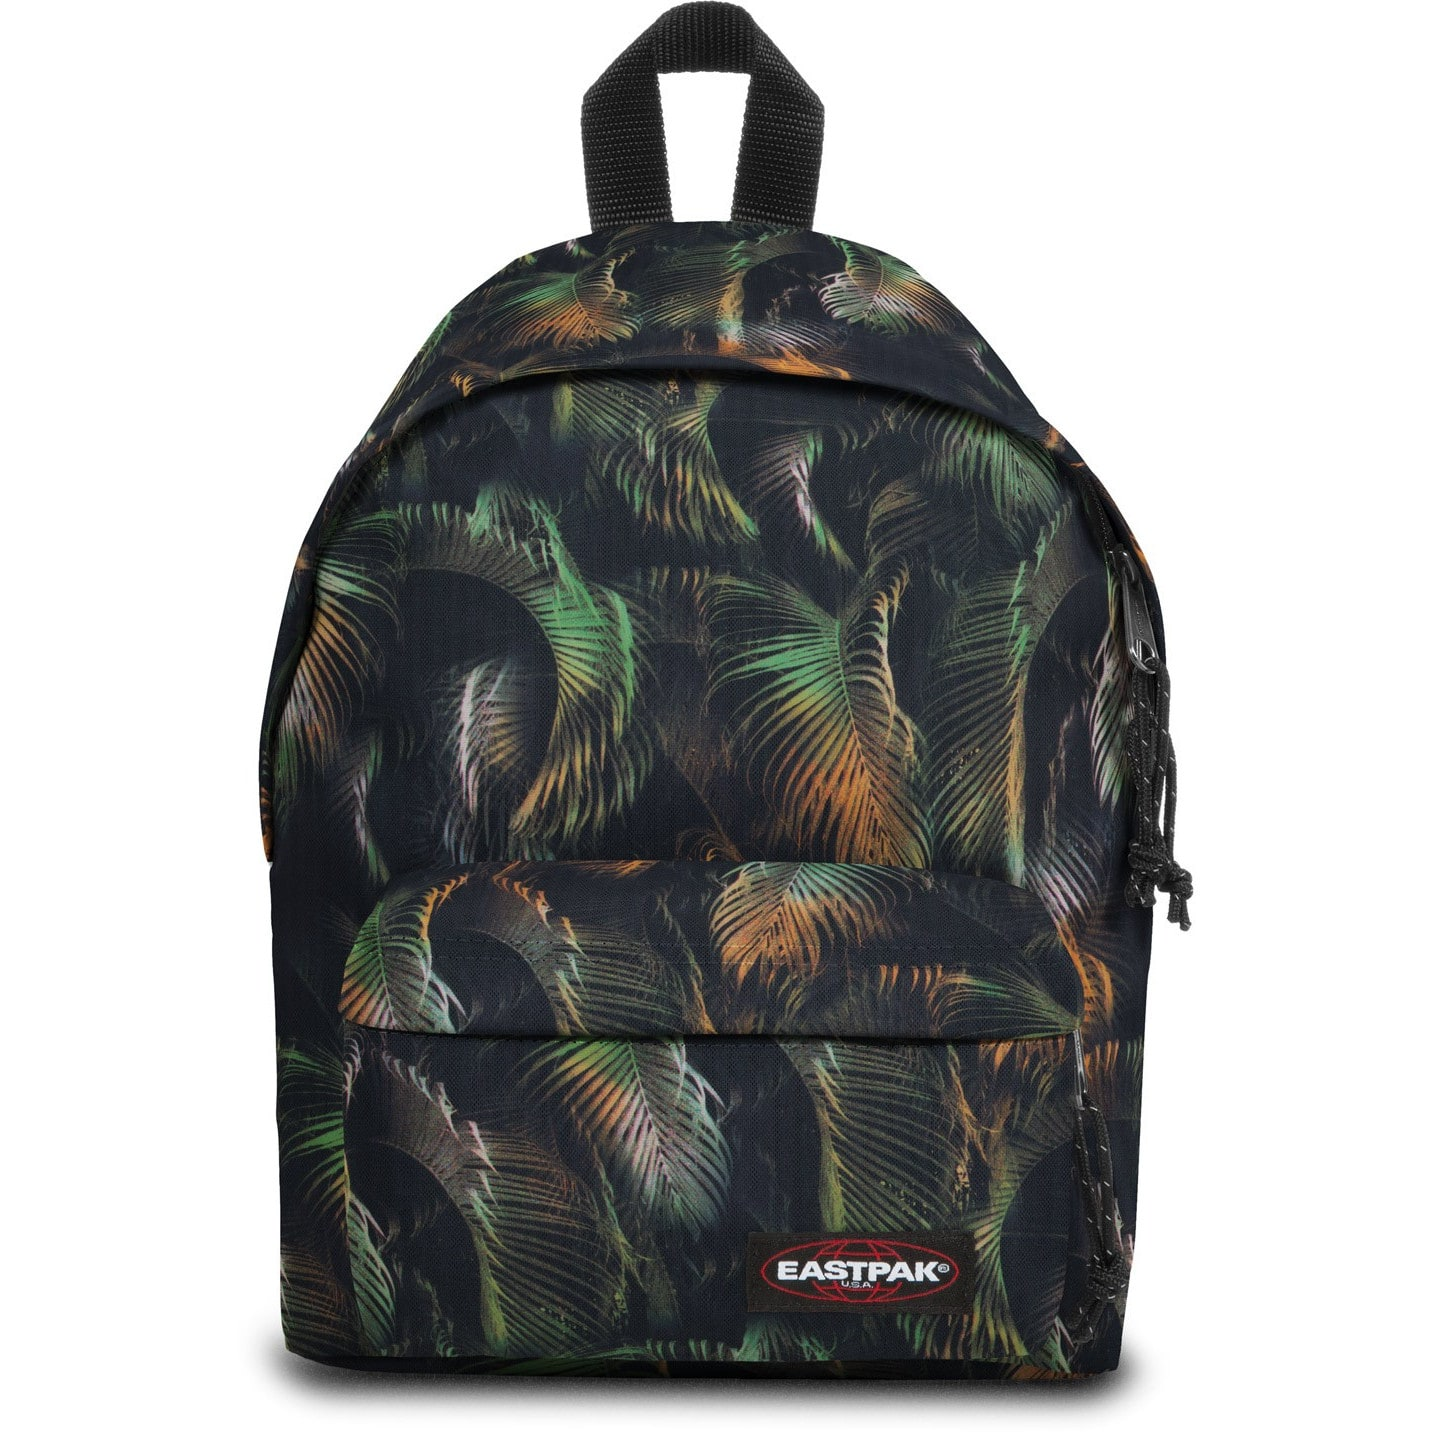 Eastpak-Orbit-Mochila